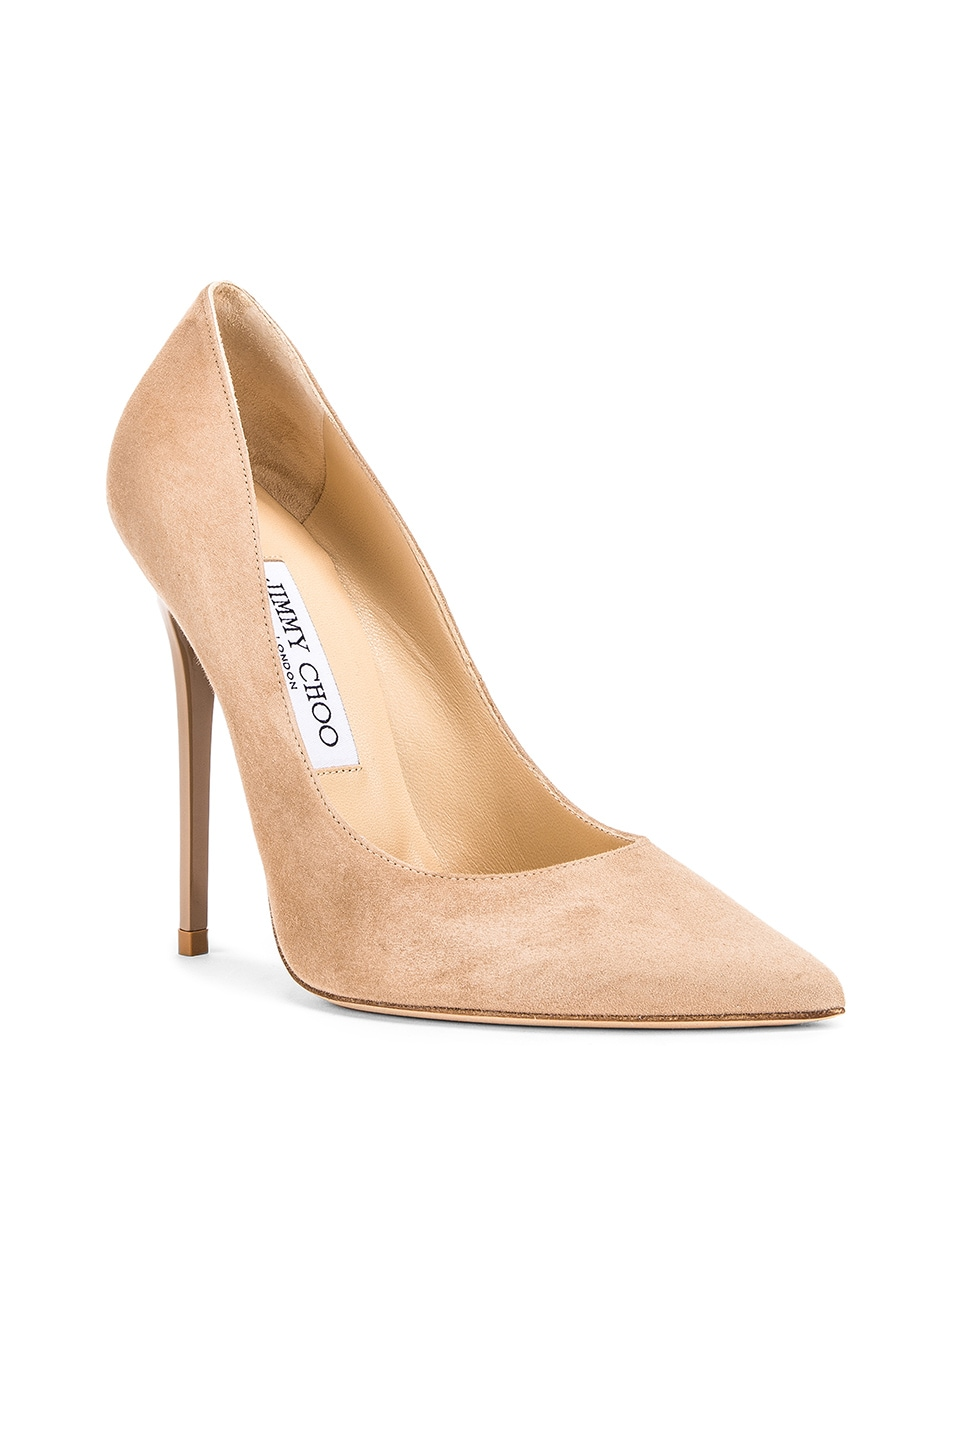 Image 2 of Jimmy Choo Anouk Suede Pumps in Nude